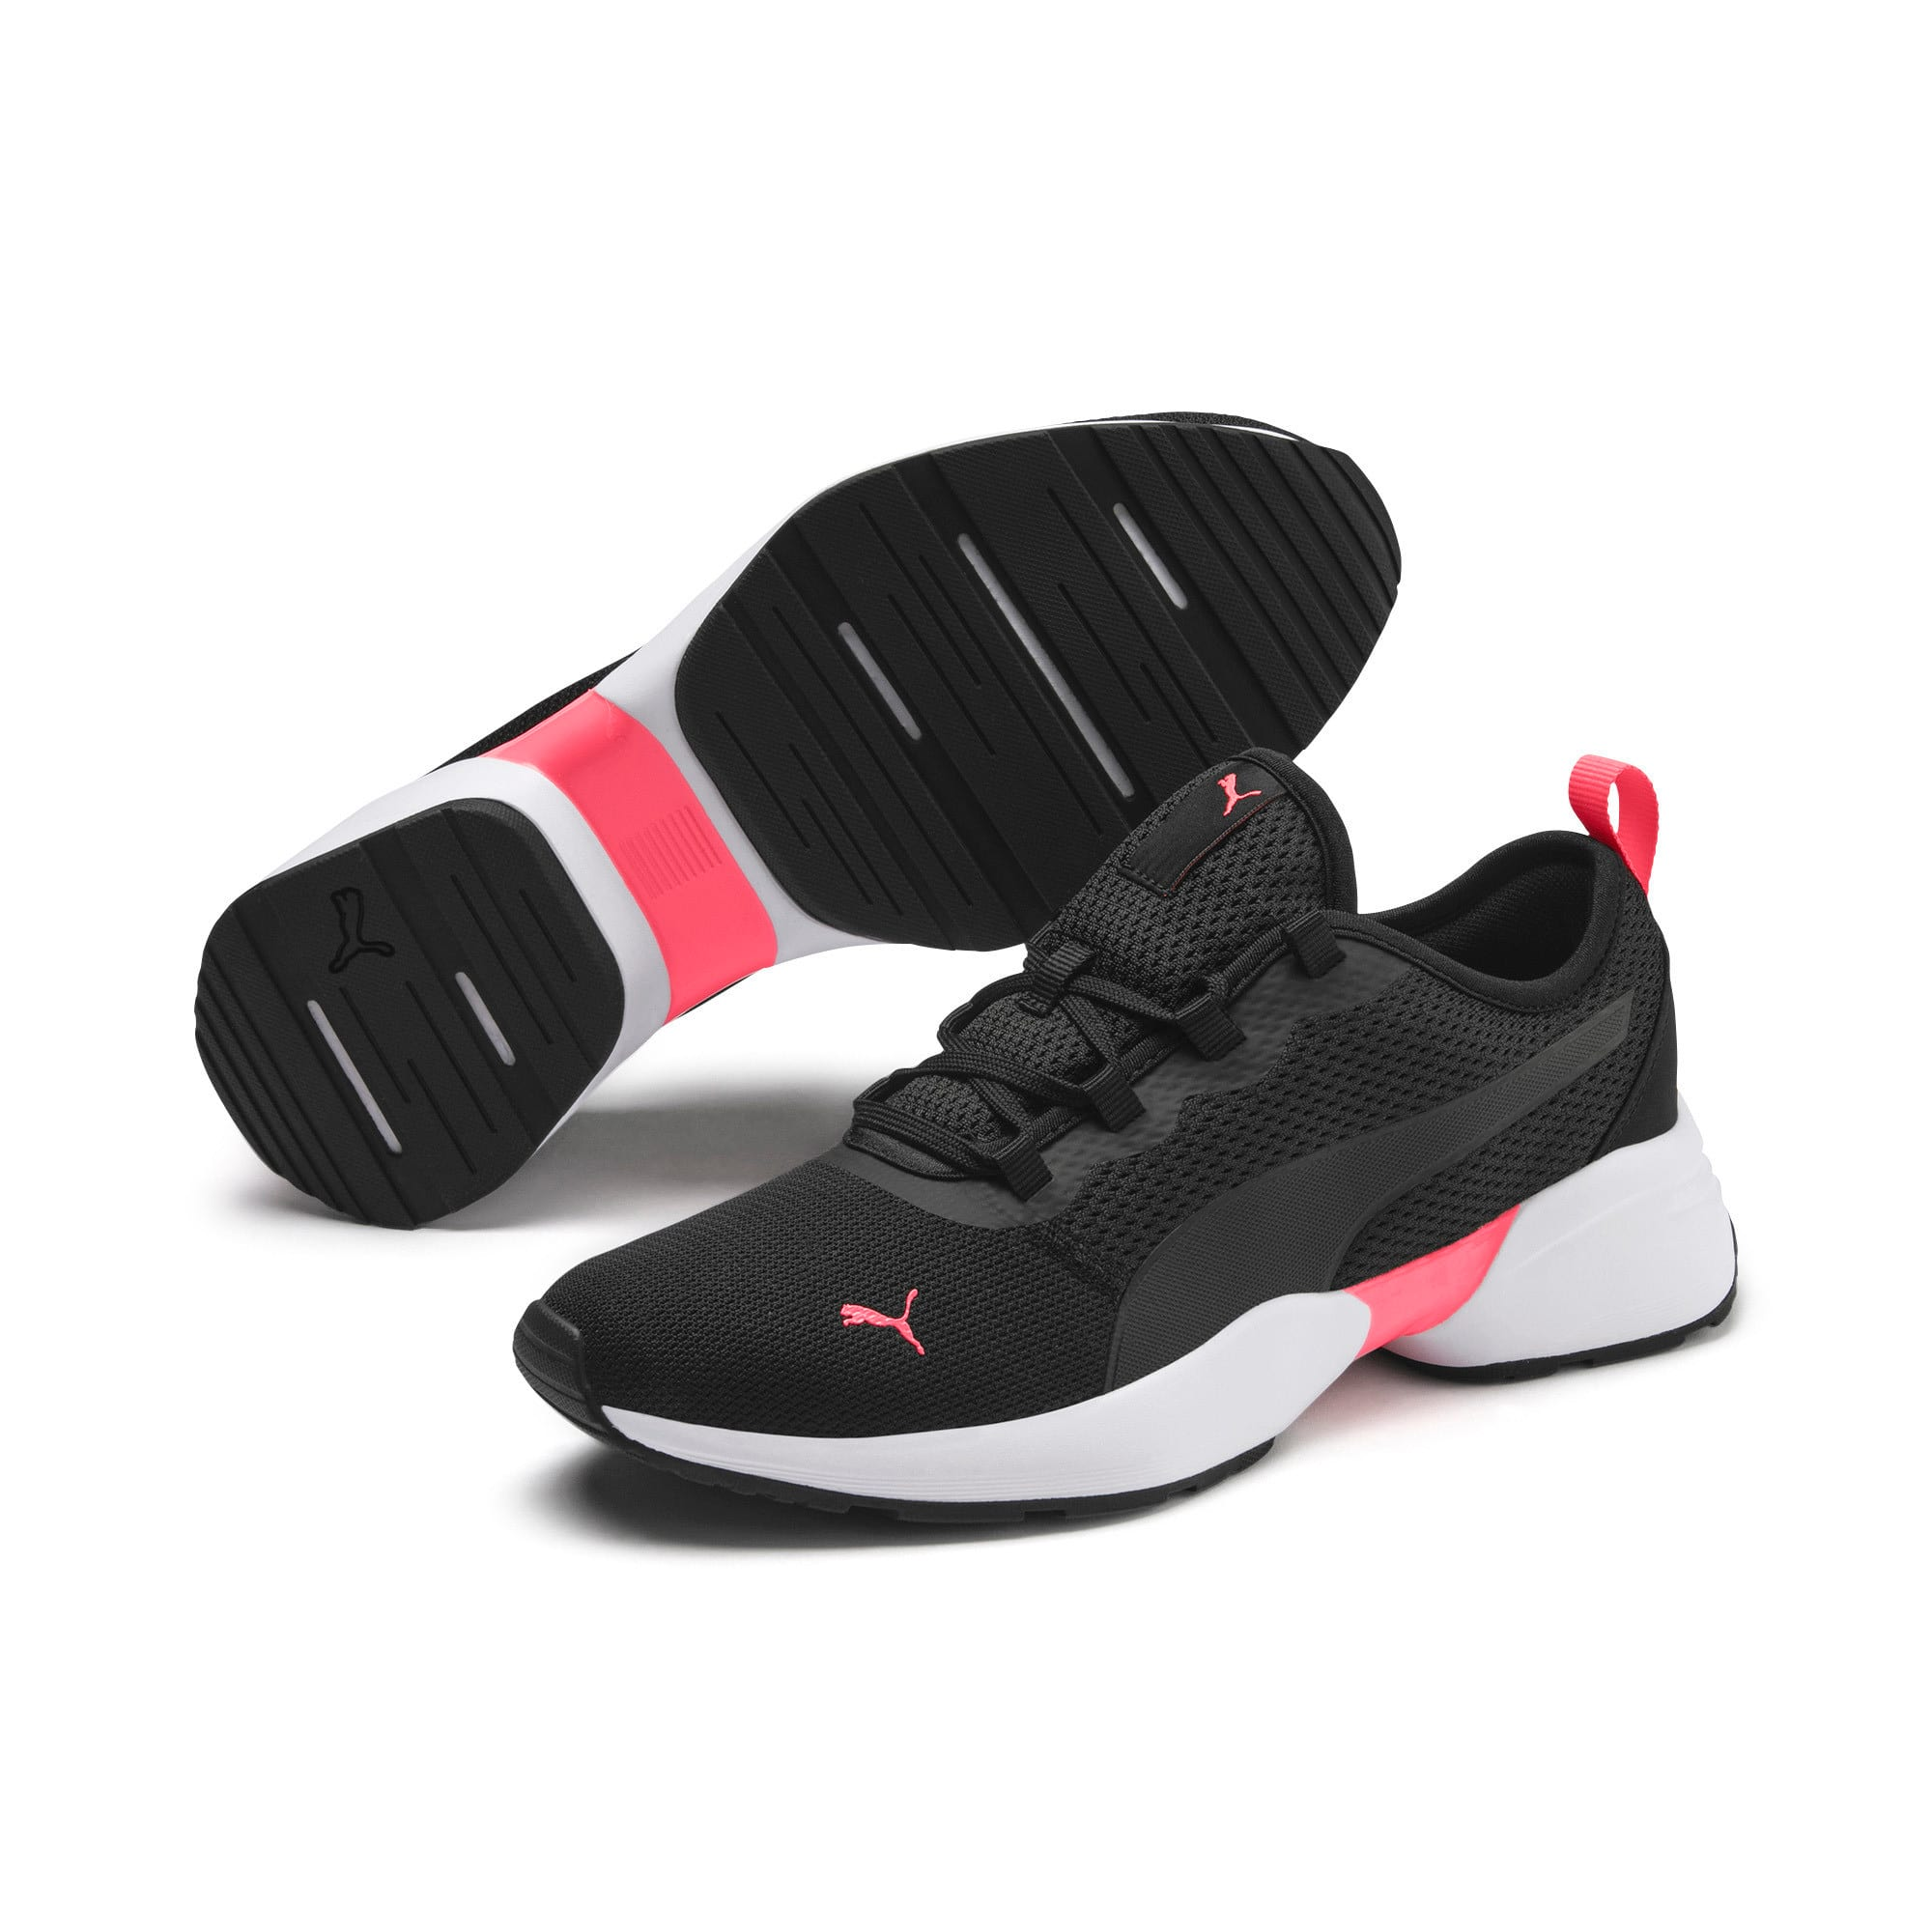 Thumbnail 3 of Sirena Sport Women's Trainers, Puma Black-Pink Alert, medium